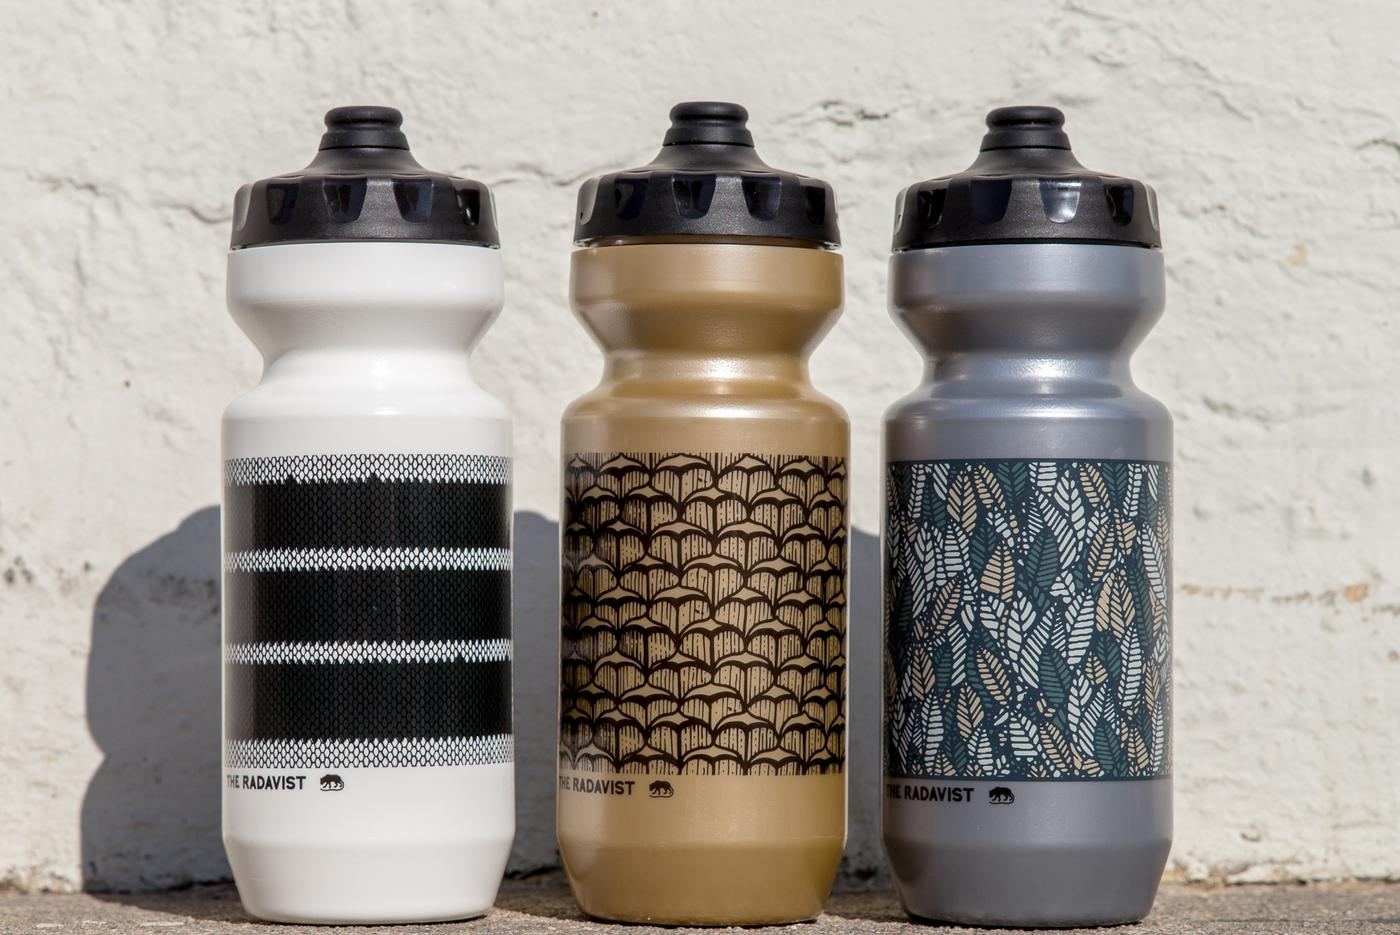 Sold Out! California Trail Friends Purist Bottle Pack